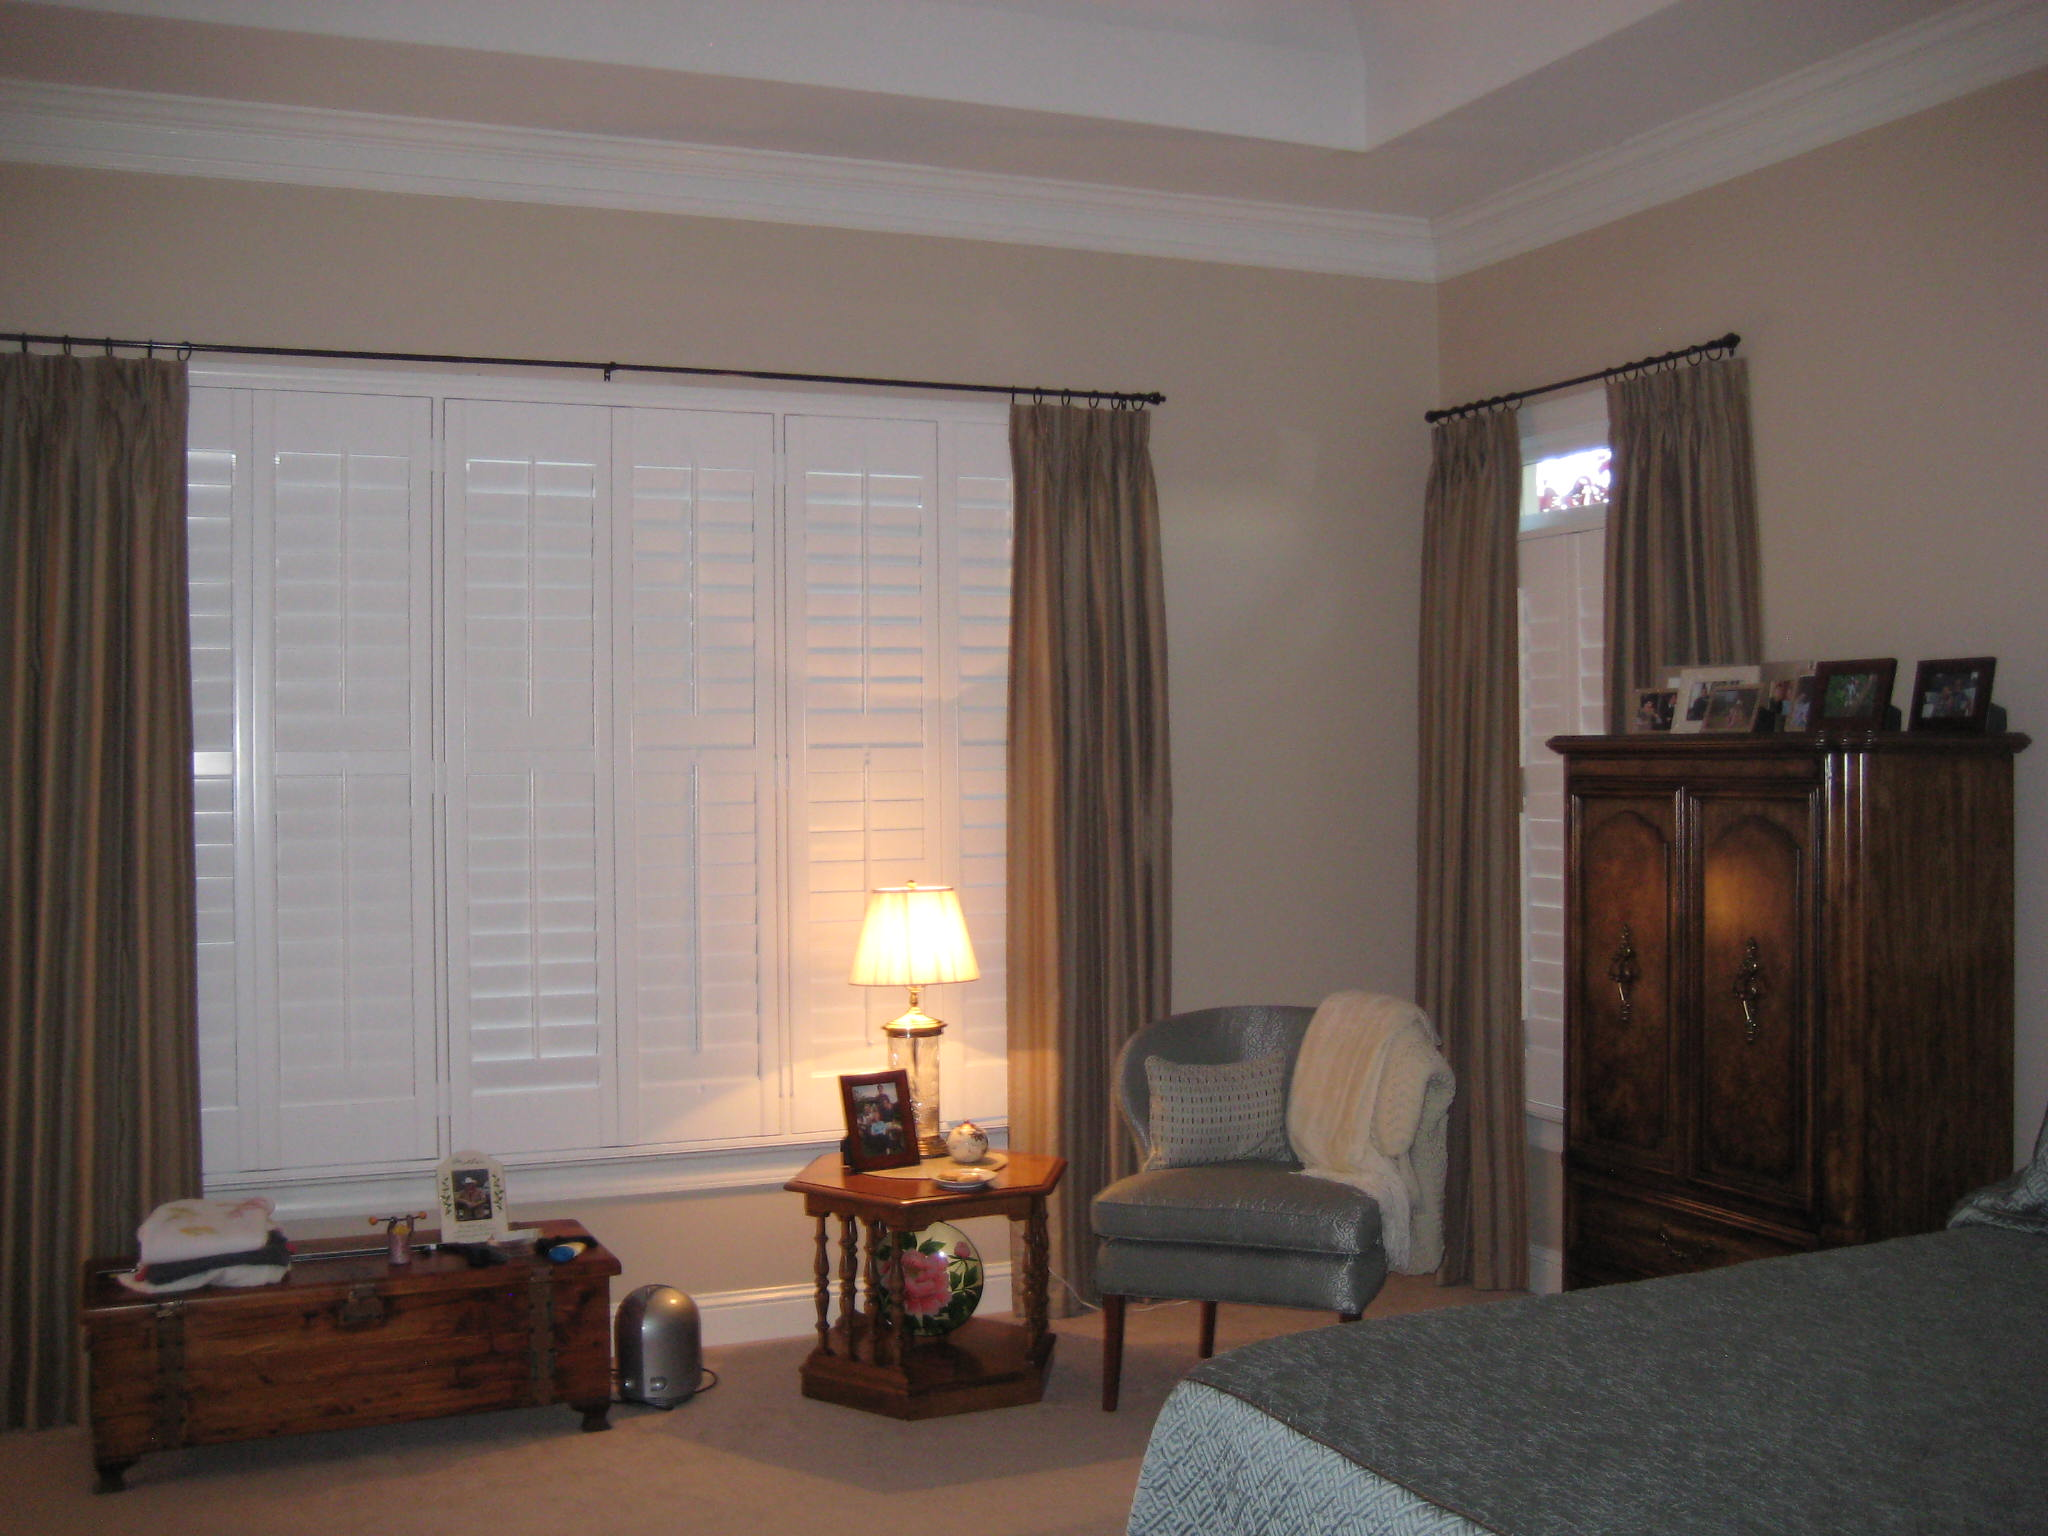 Bedroom Make over. Window treatment and shutters help insulate the home for the winter and summer.